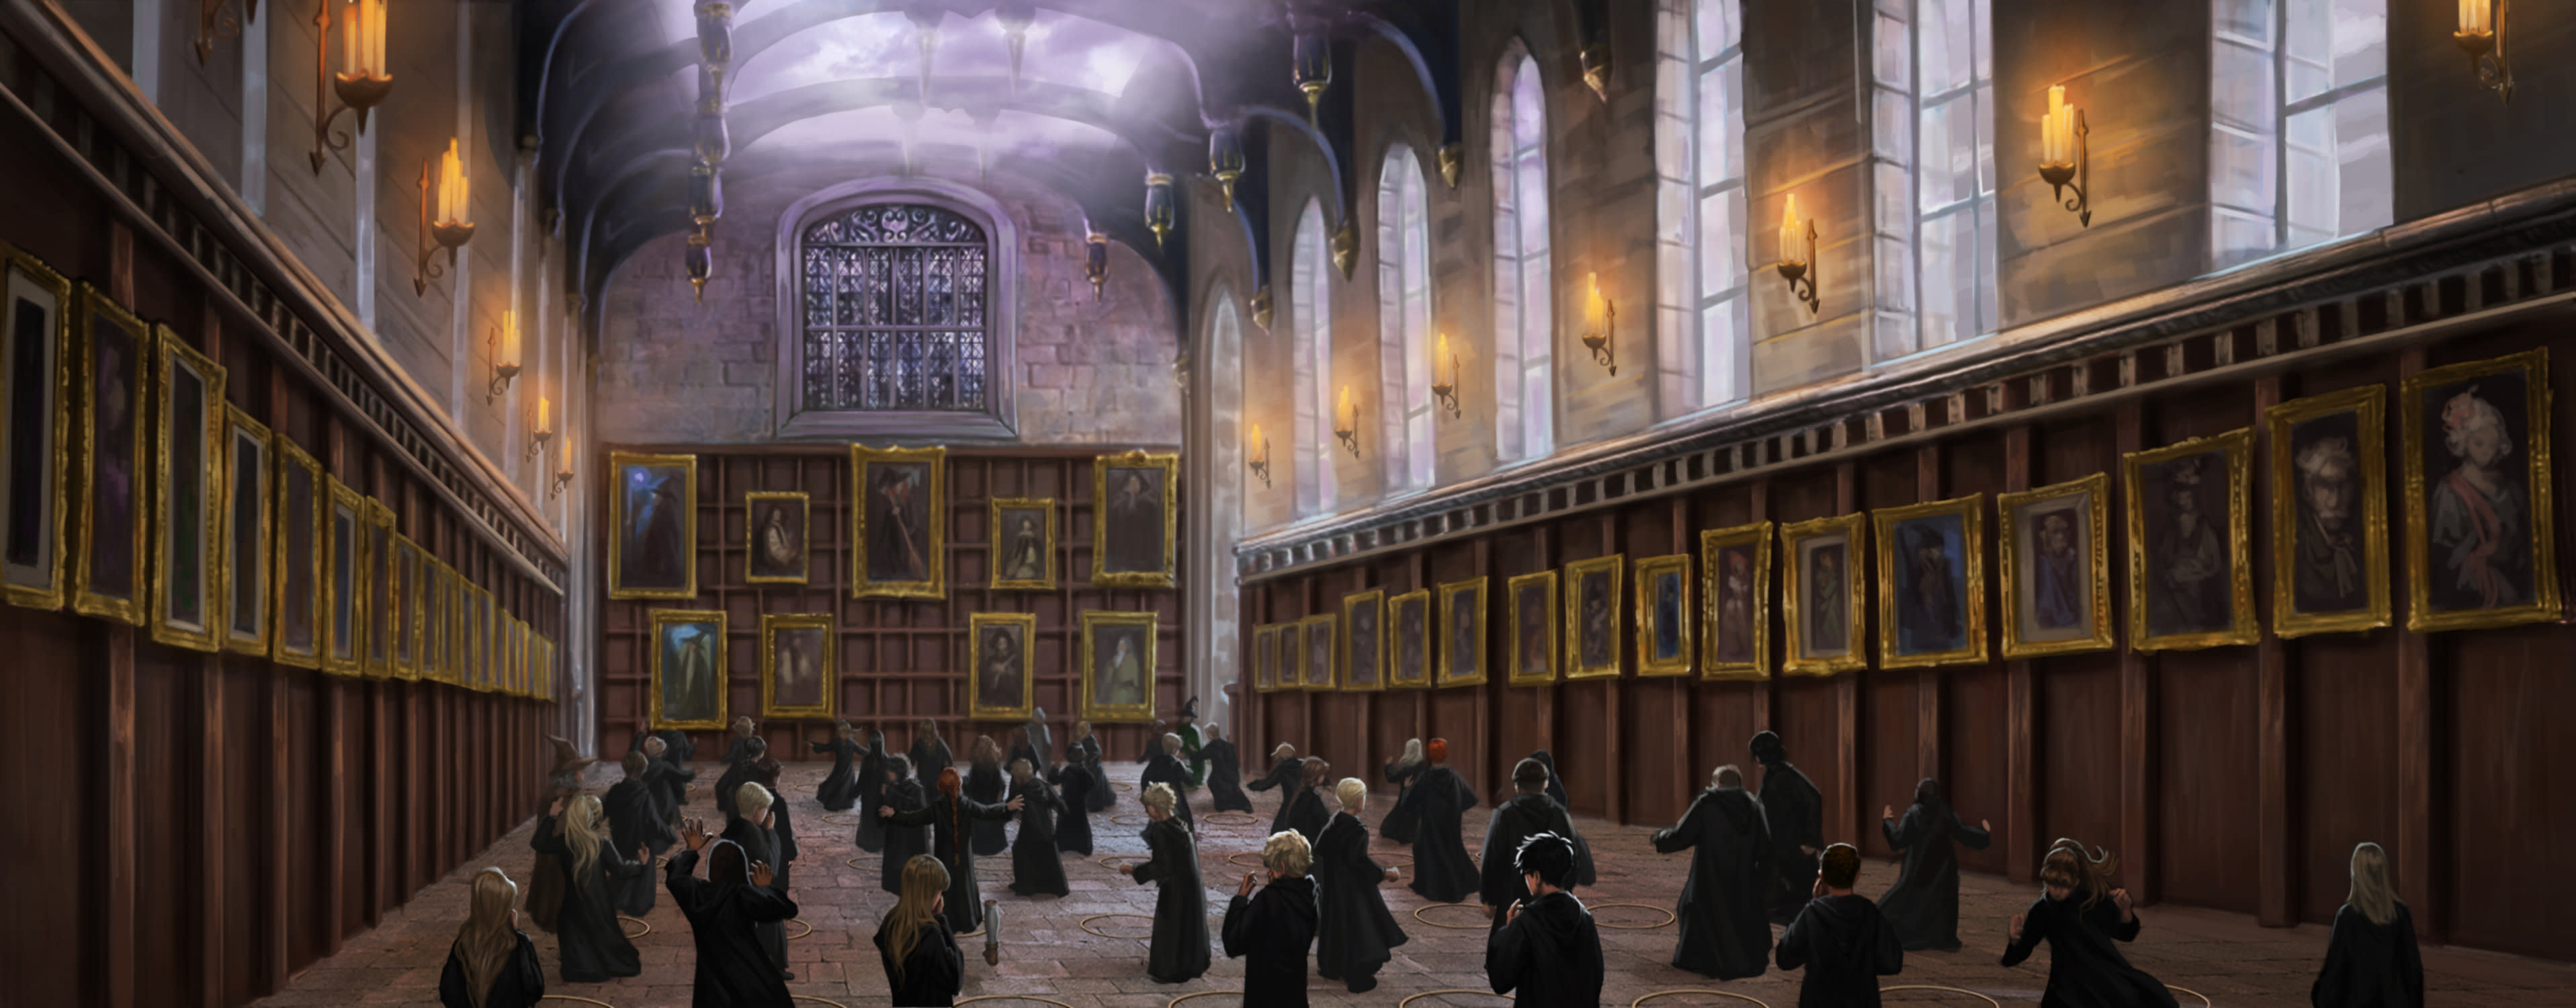 Hogwarts PM B6C18M1 ApparitionLessonsInGreatHall Moment